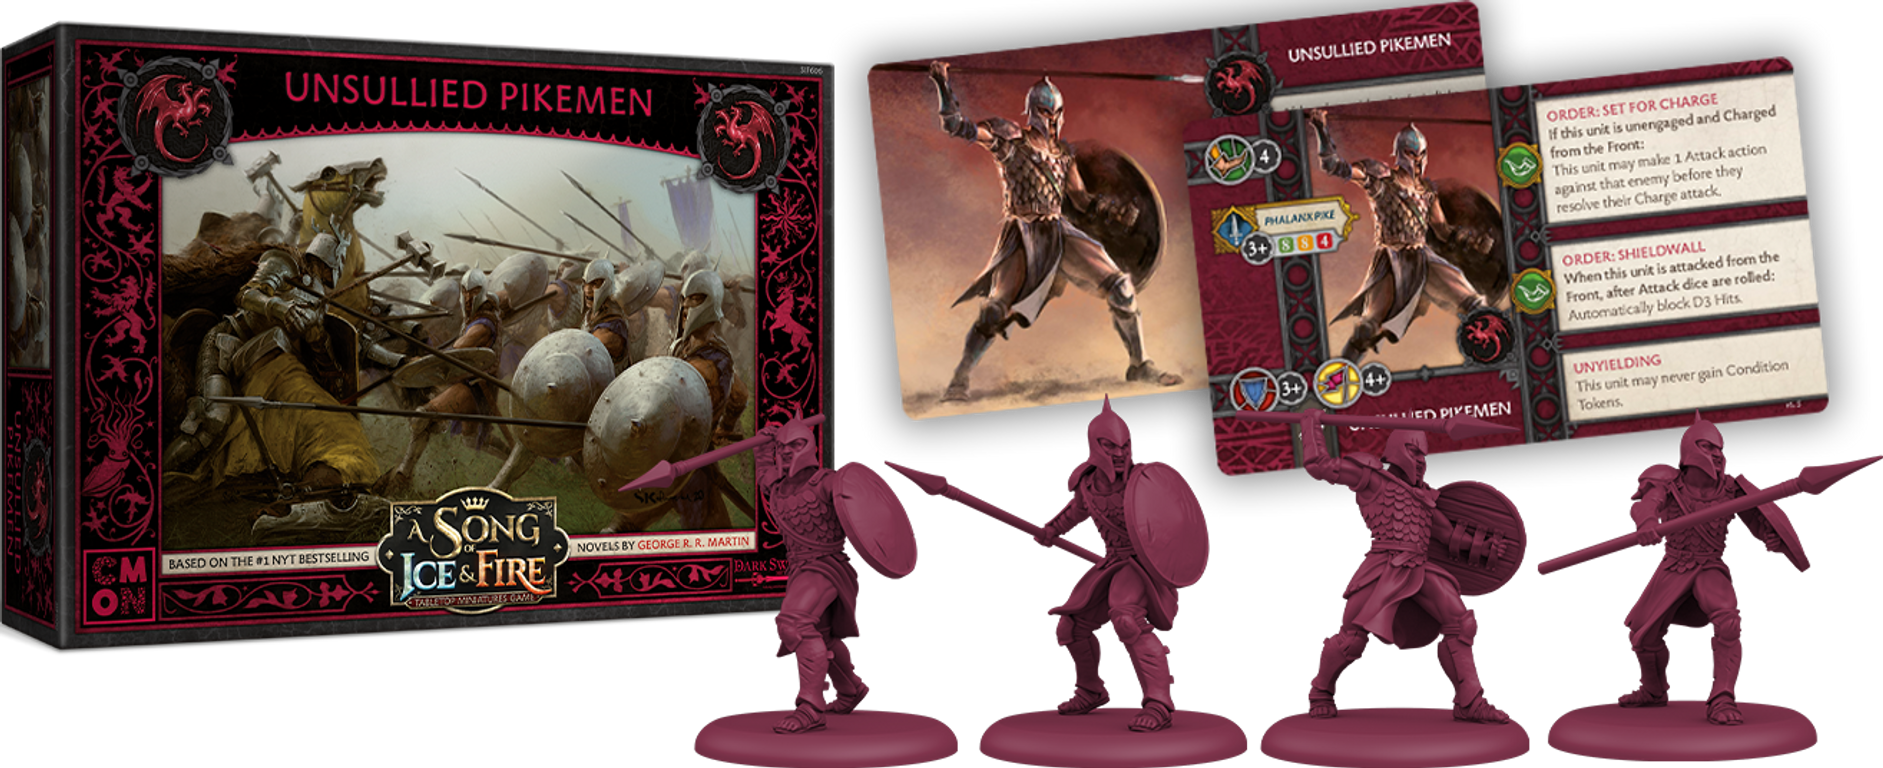 A Song of Ice & Fire: Tabletop Miniatures Game – Targaryen Unsullied Pikemen components